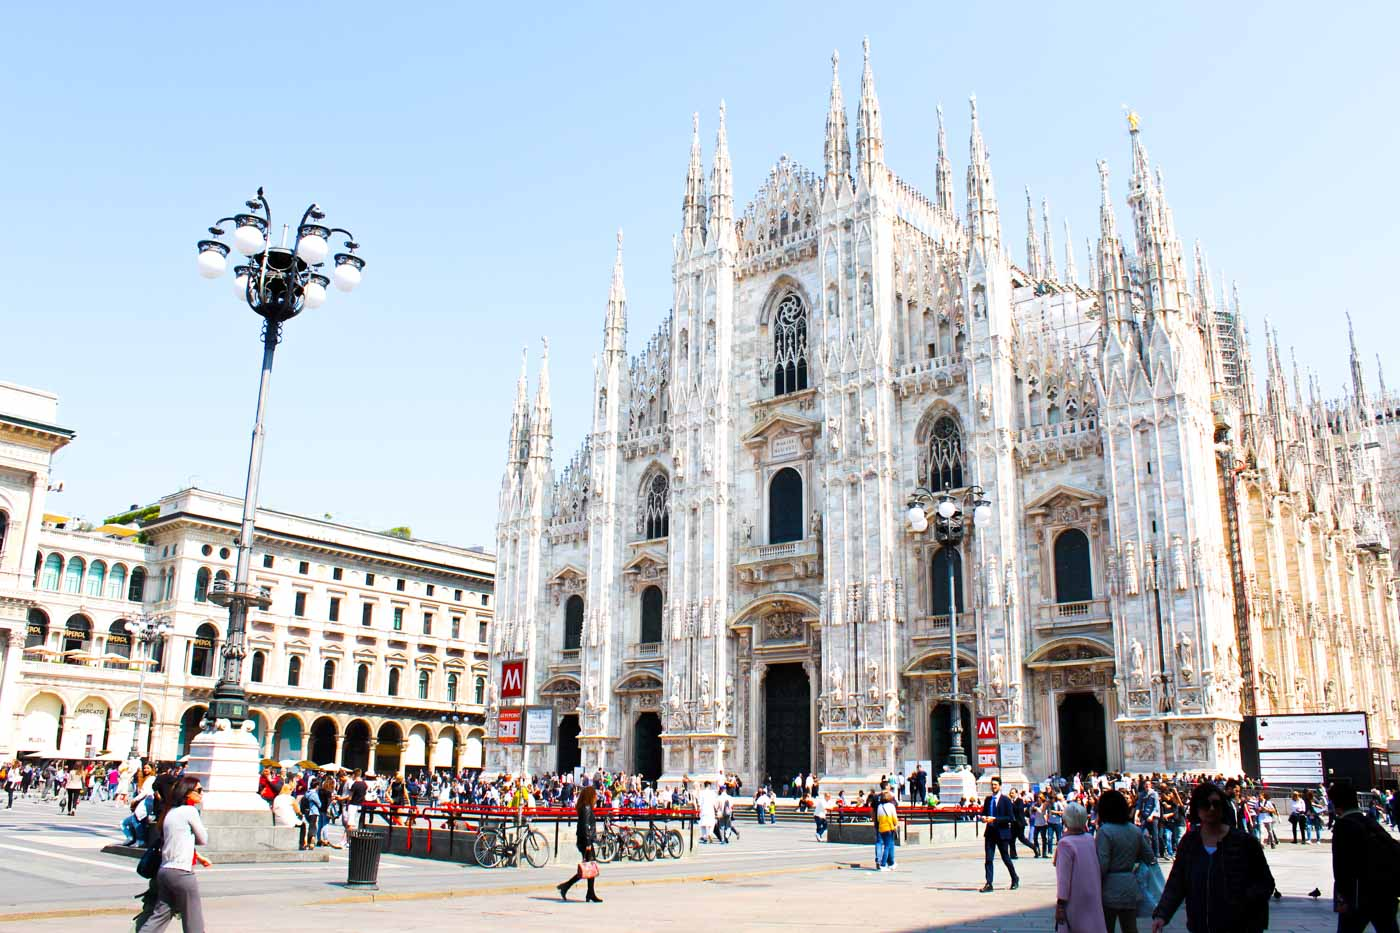 MELTING POT. Many OFWs can be seen hanging around the Milan Cathedral on their days off. Photo by Don Kevin Hapal/Rappler